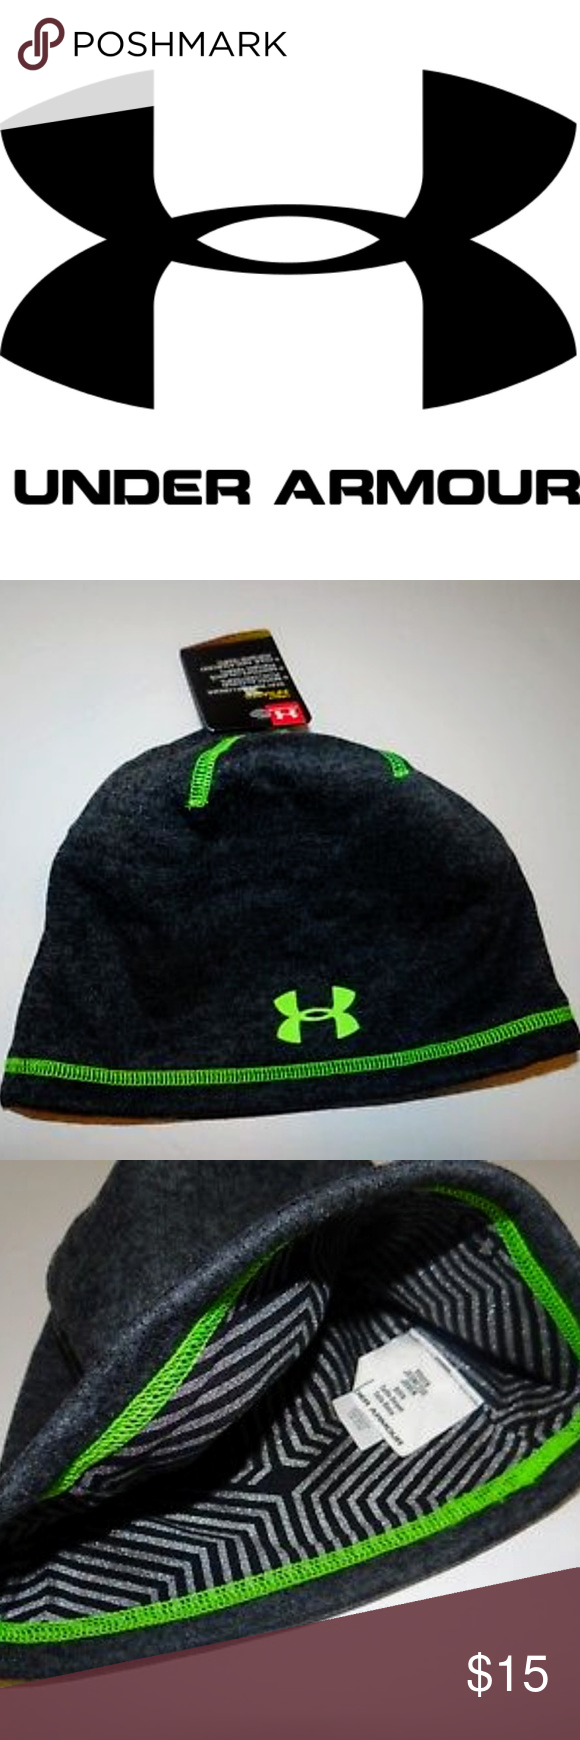 NWT - UNDER ARMOUR STORM 1 Youth BEANIE Gray Under Armour STORM Infrared  Beanie Hat. a5eae72090e